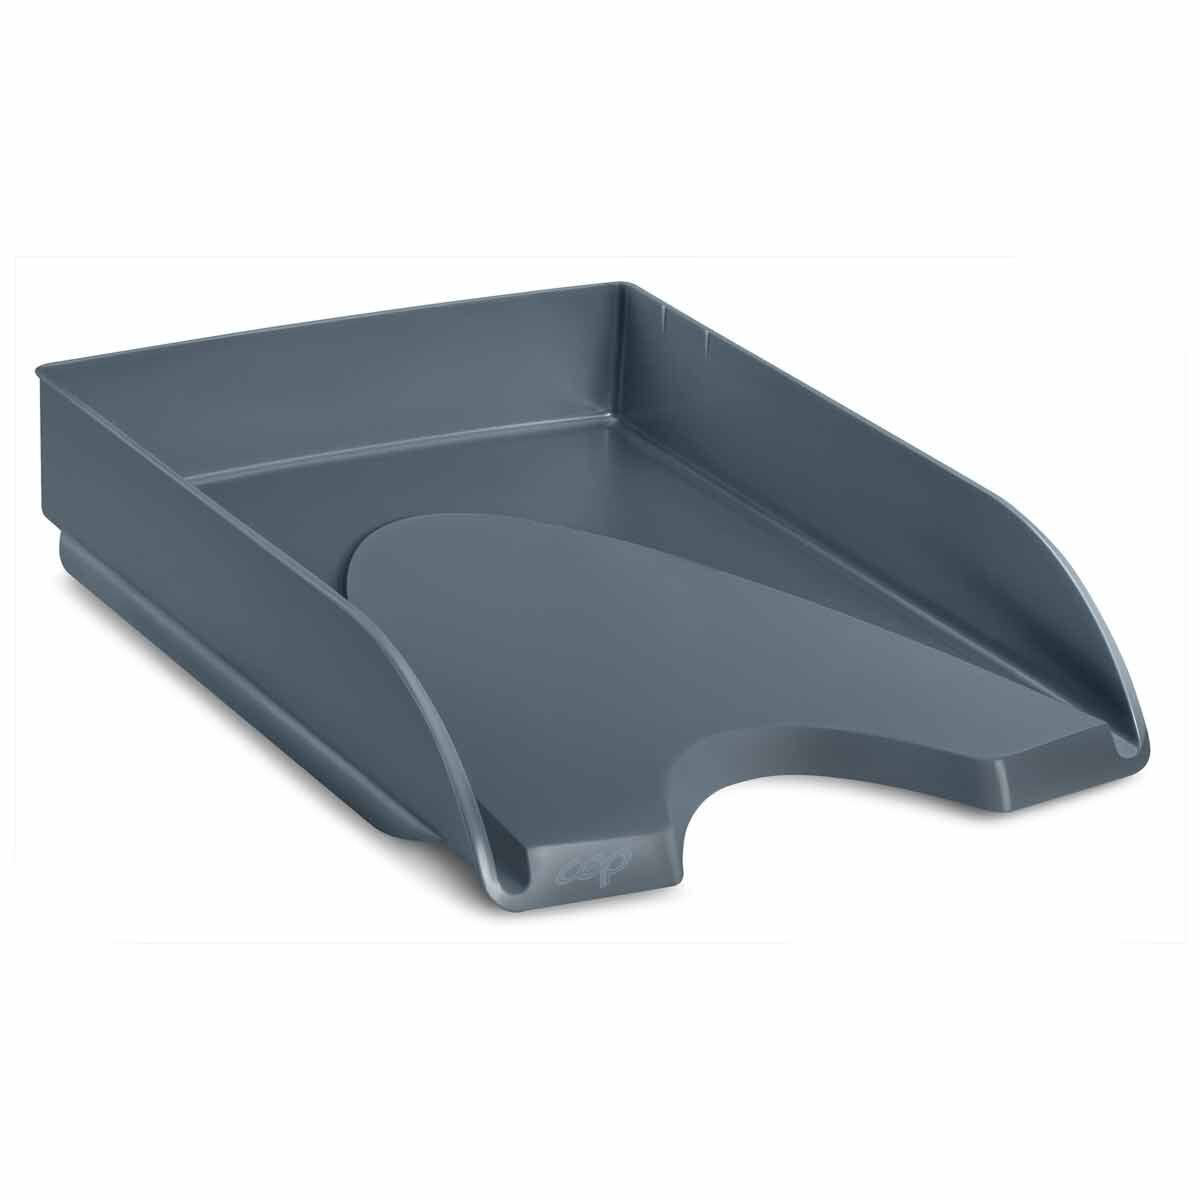 CEP Pro Letter Tray Grey